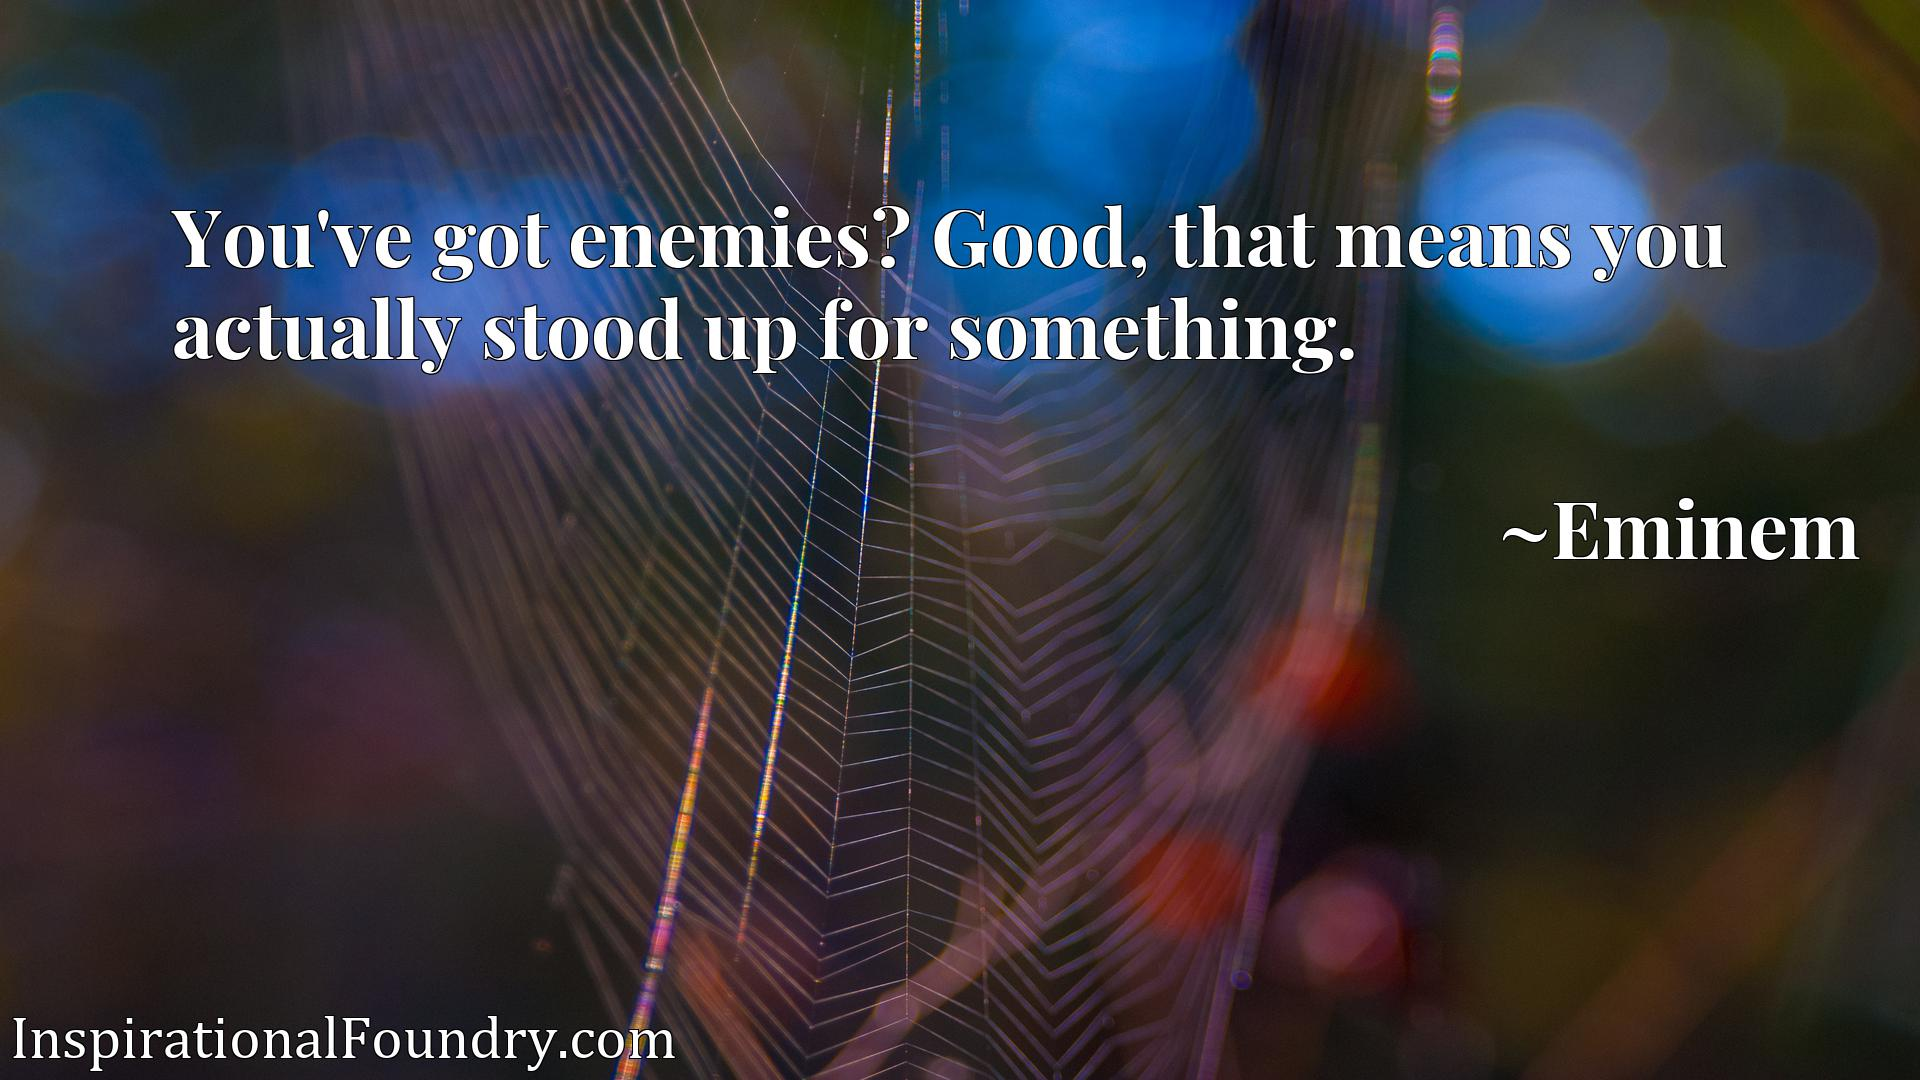 You've got enemies? Good, that means you actually stood up for something.